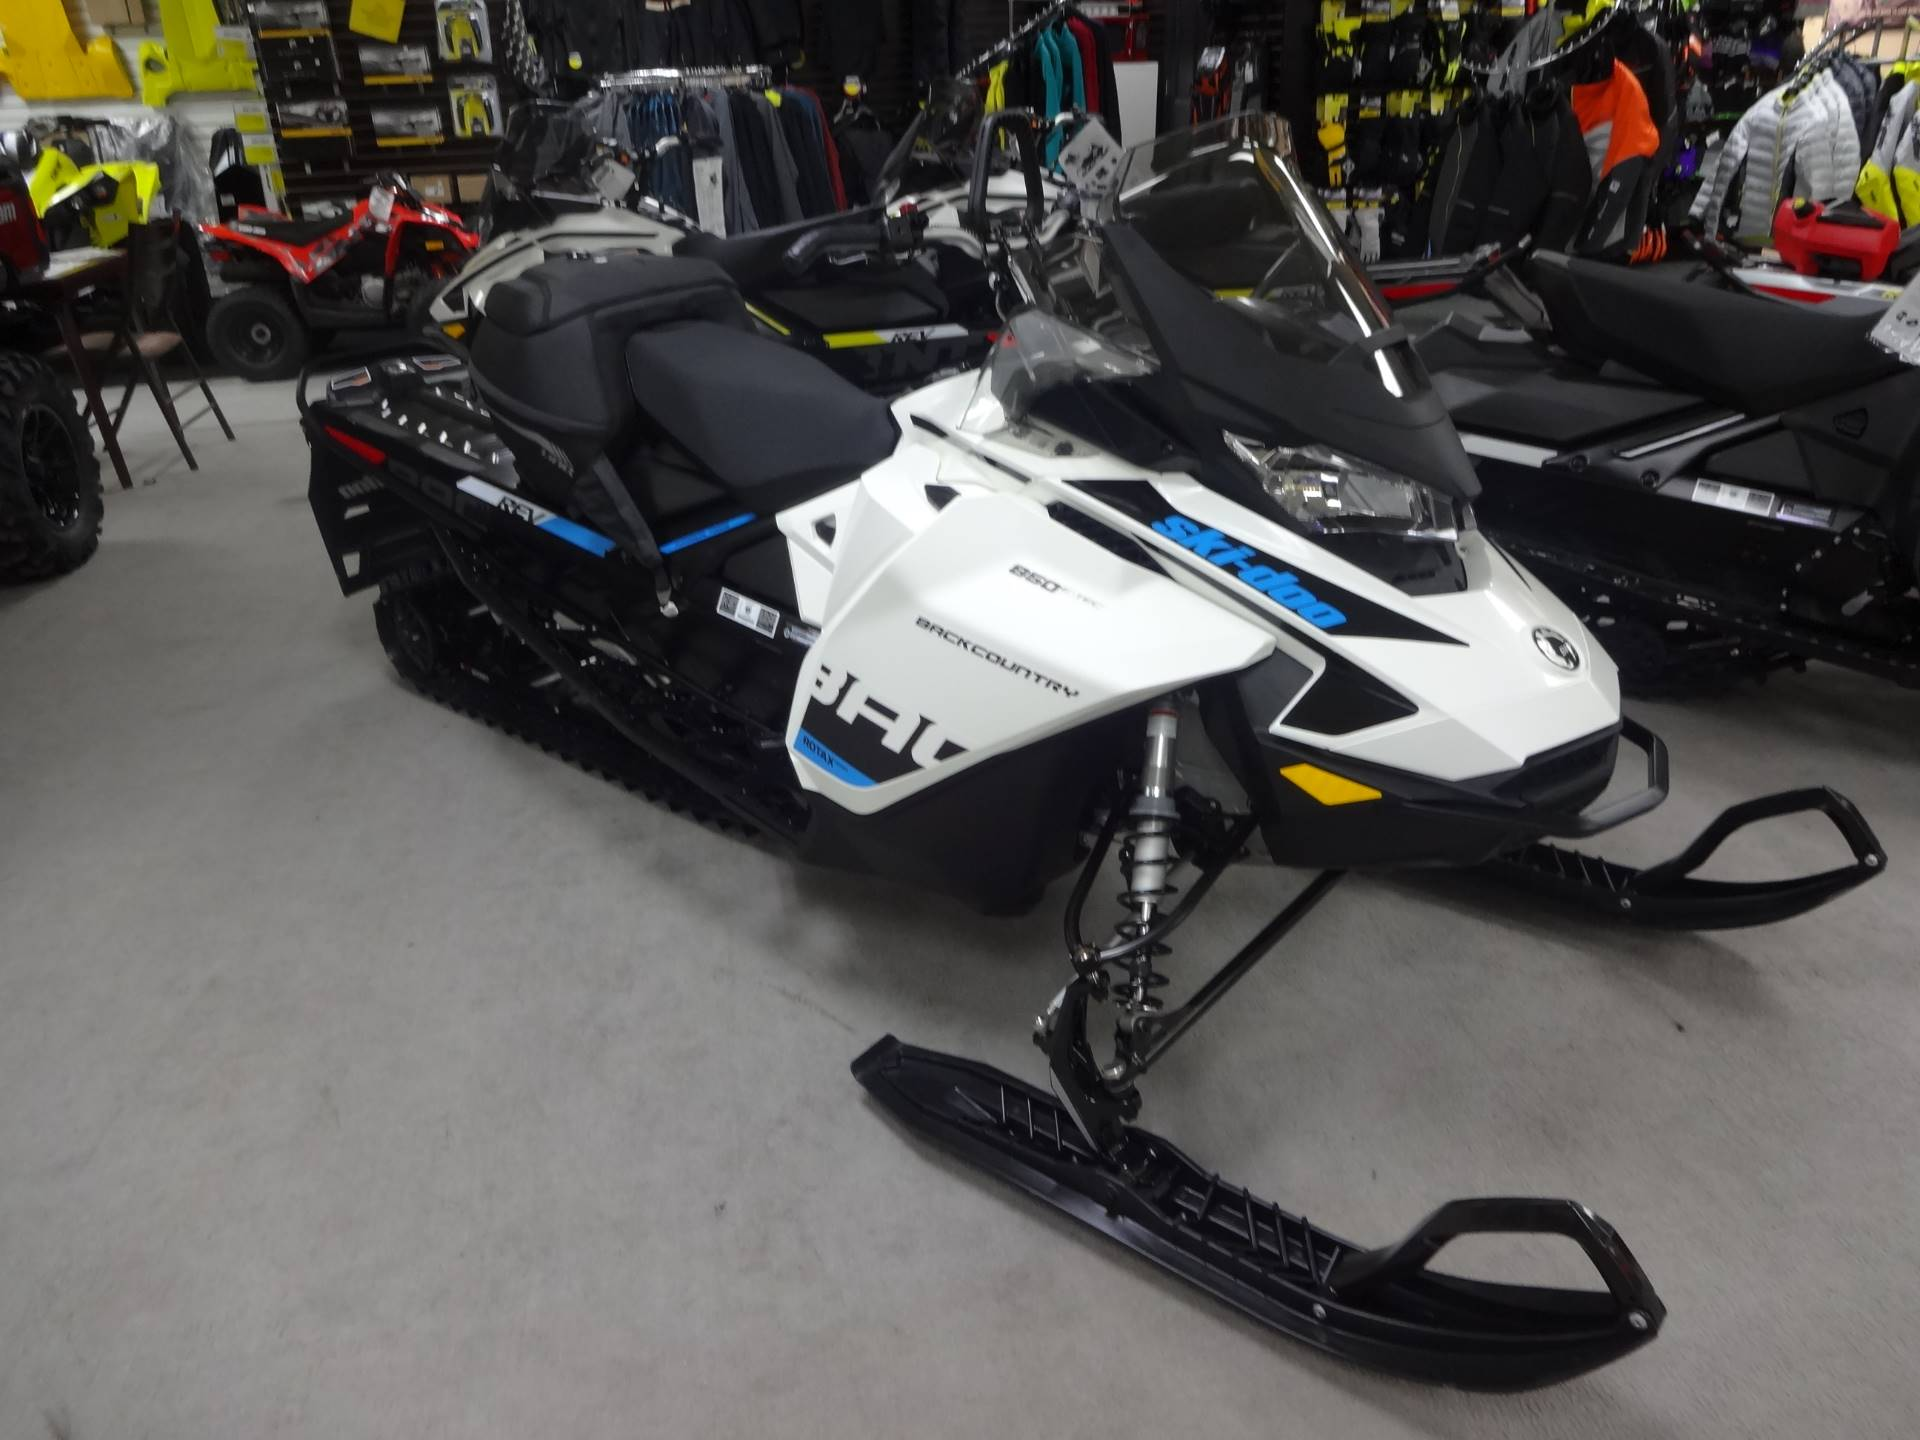 2019 Ski-Doo Backcountry 850 E-Tec in Zulu, Indiana - Photo 1